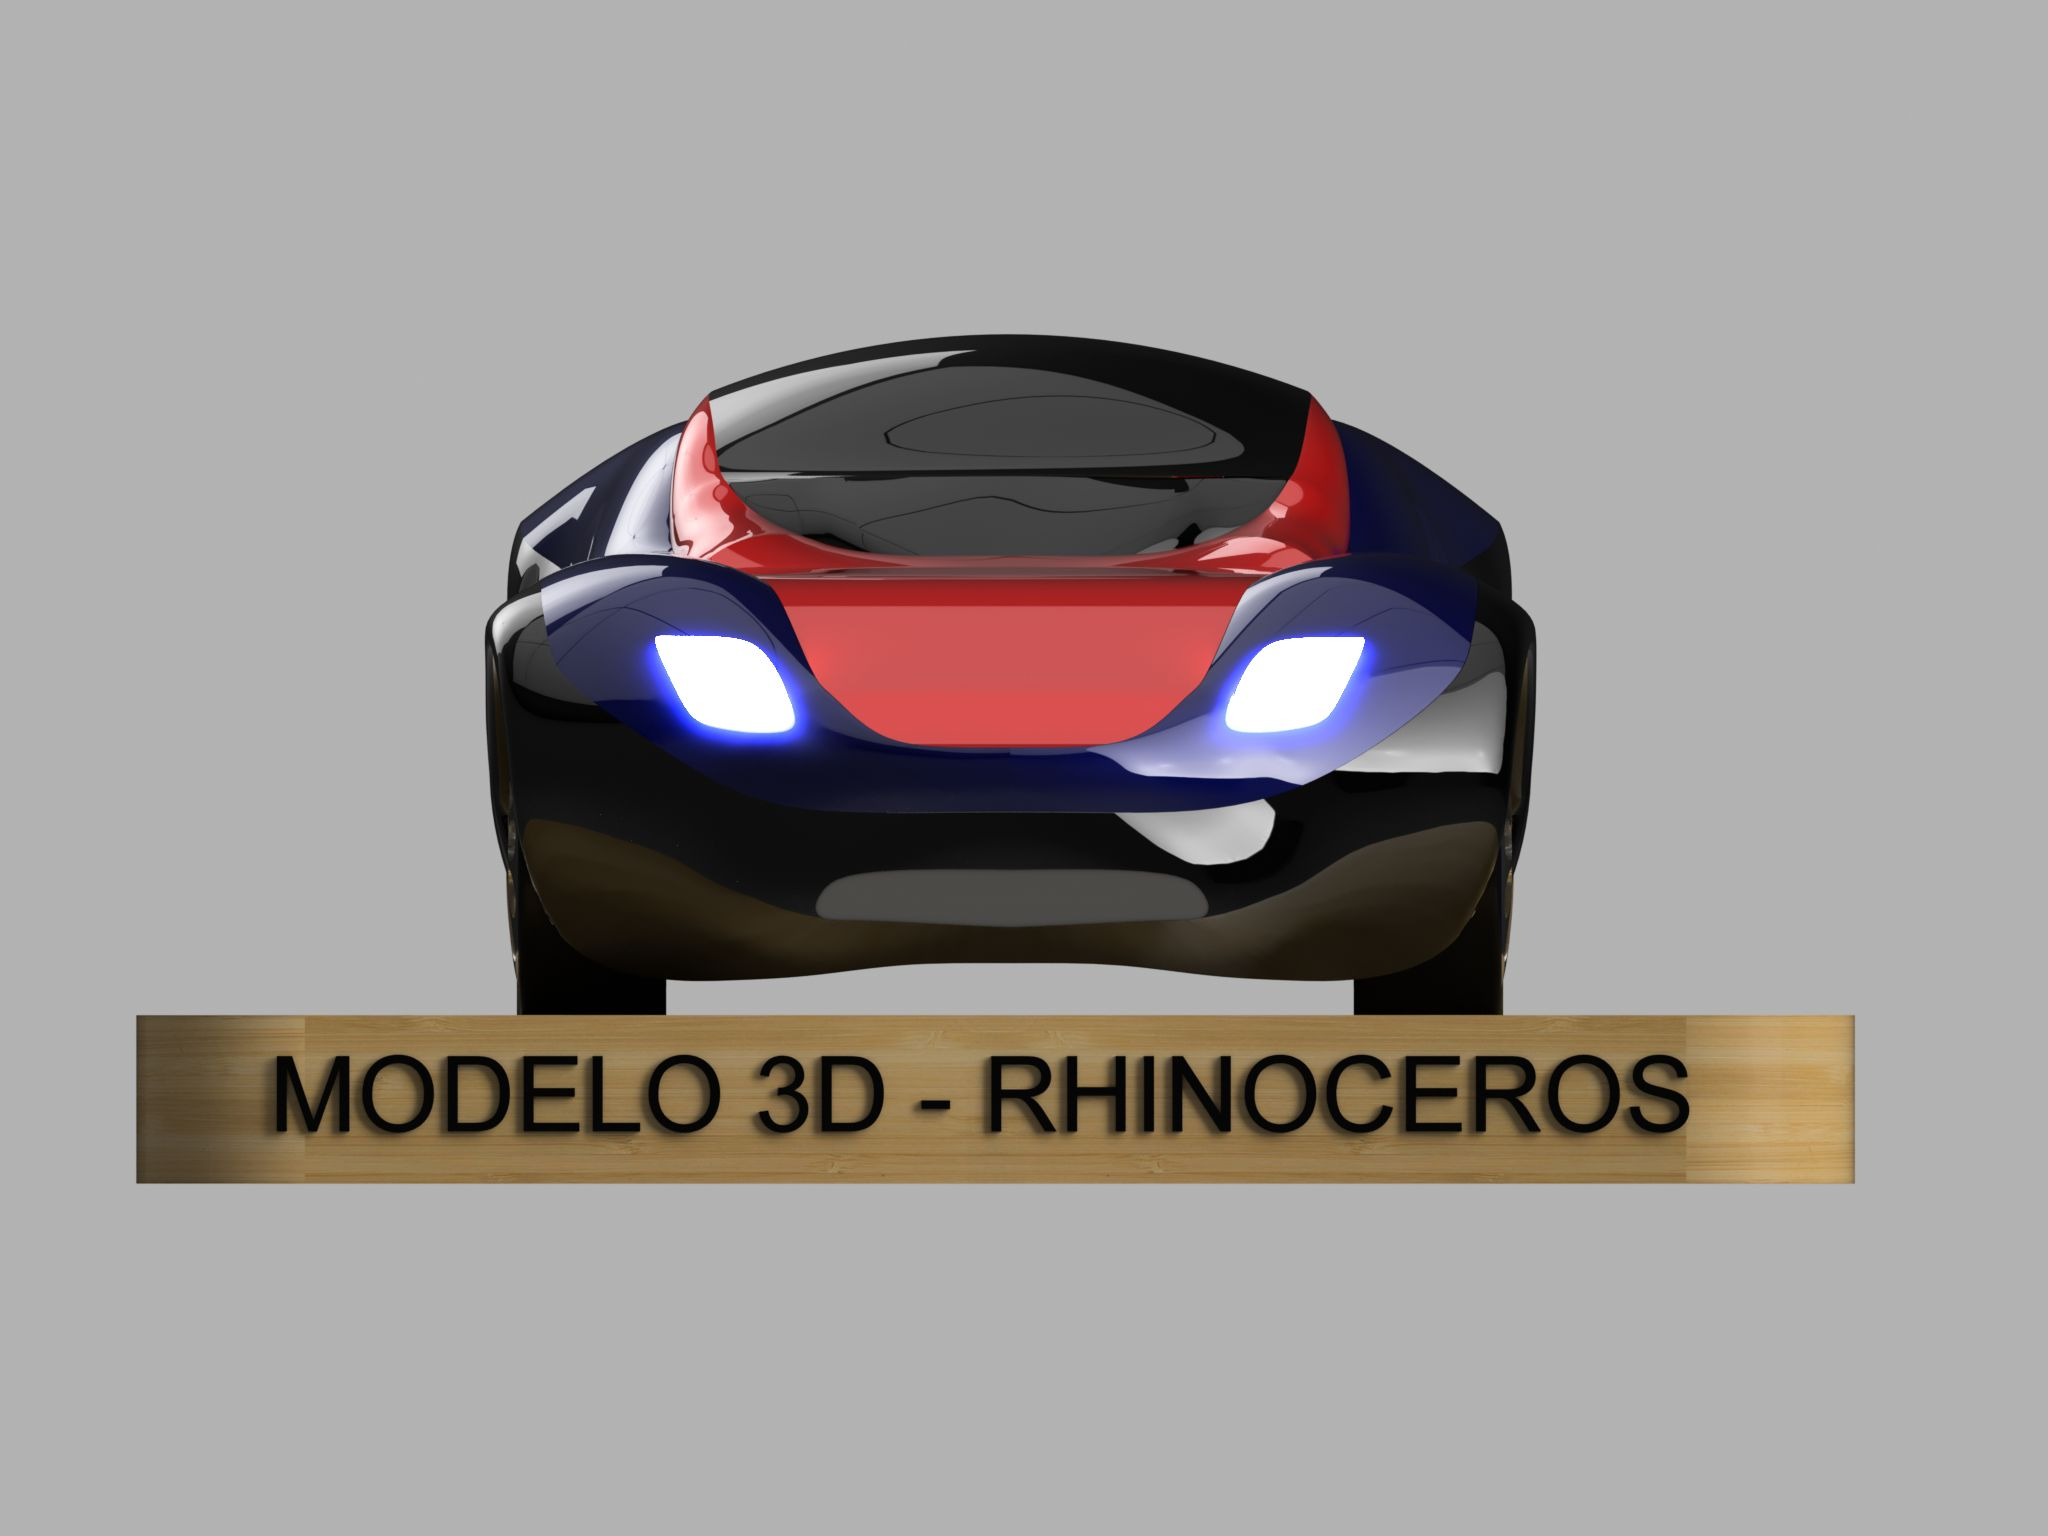 Auto-2018-feb-12-01-39-57pm-000-customizedview1586696924-png-3500-3500